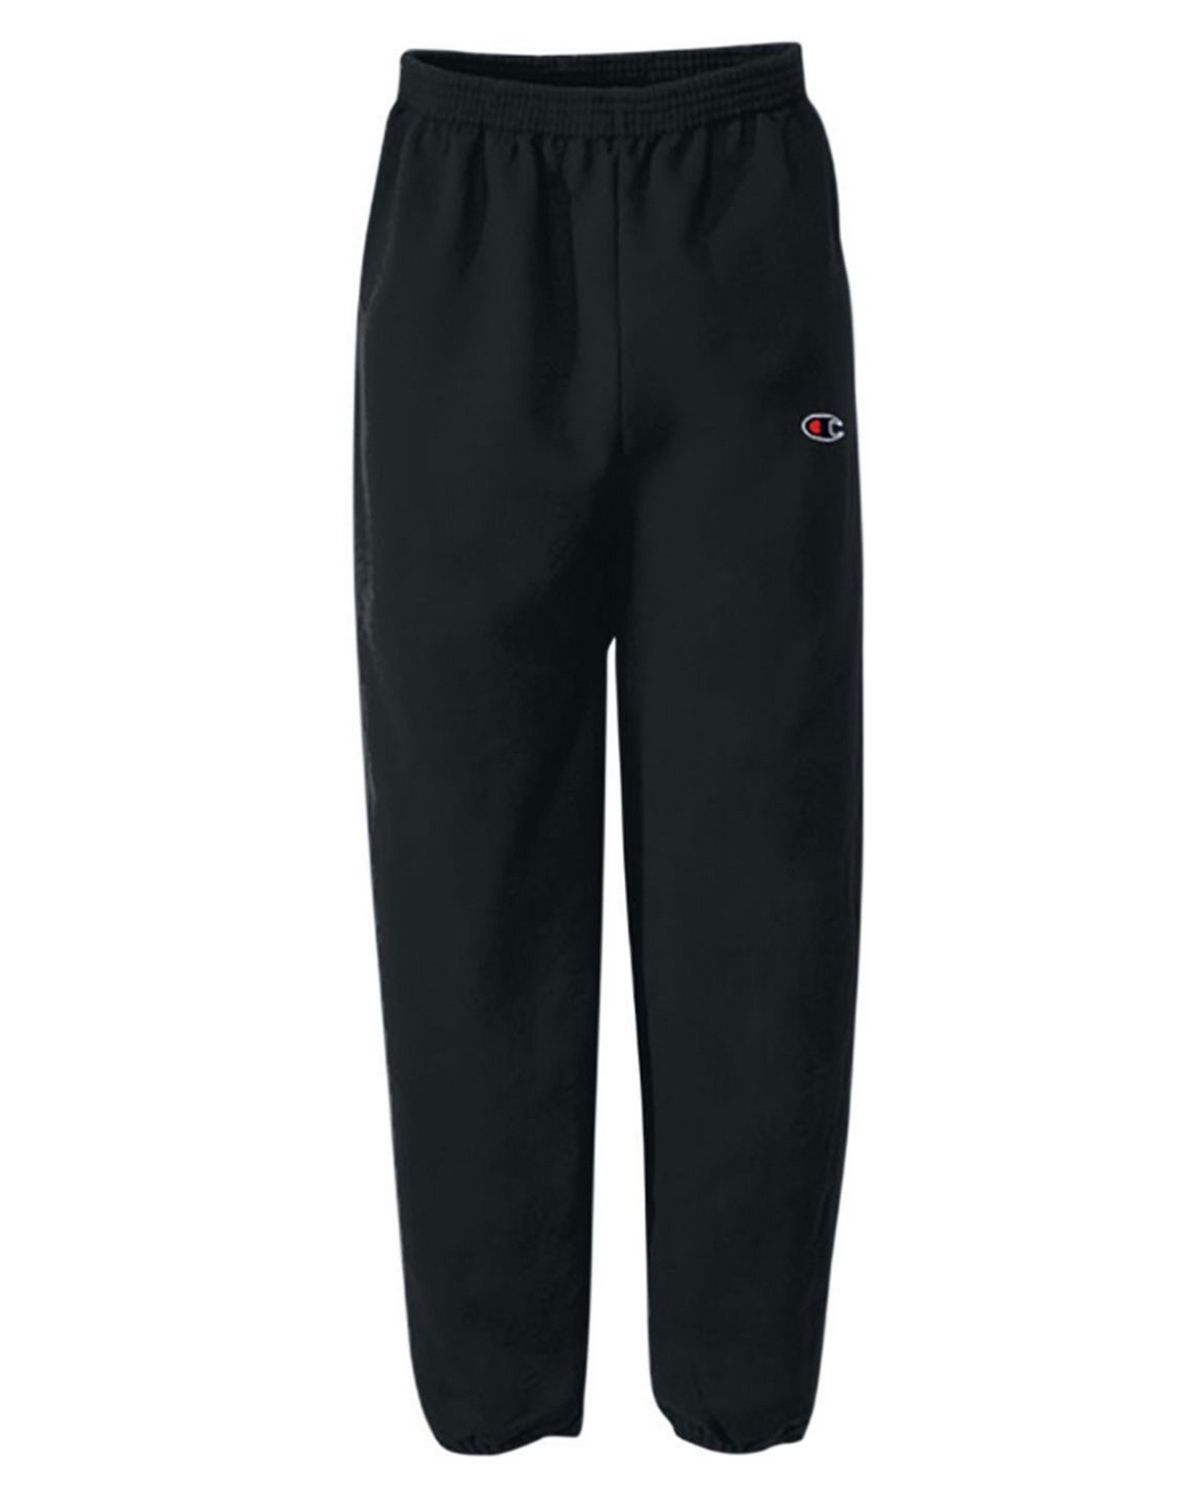 Champion P790 Youth Eco Fleece Bb Pant - Dark Green - S P790